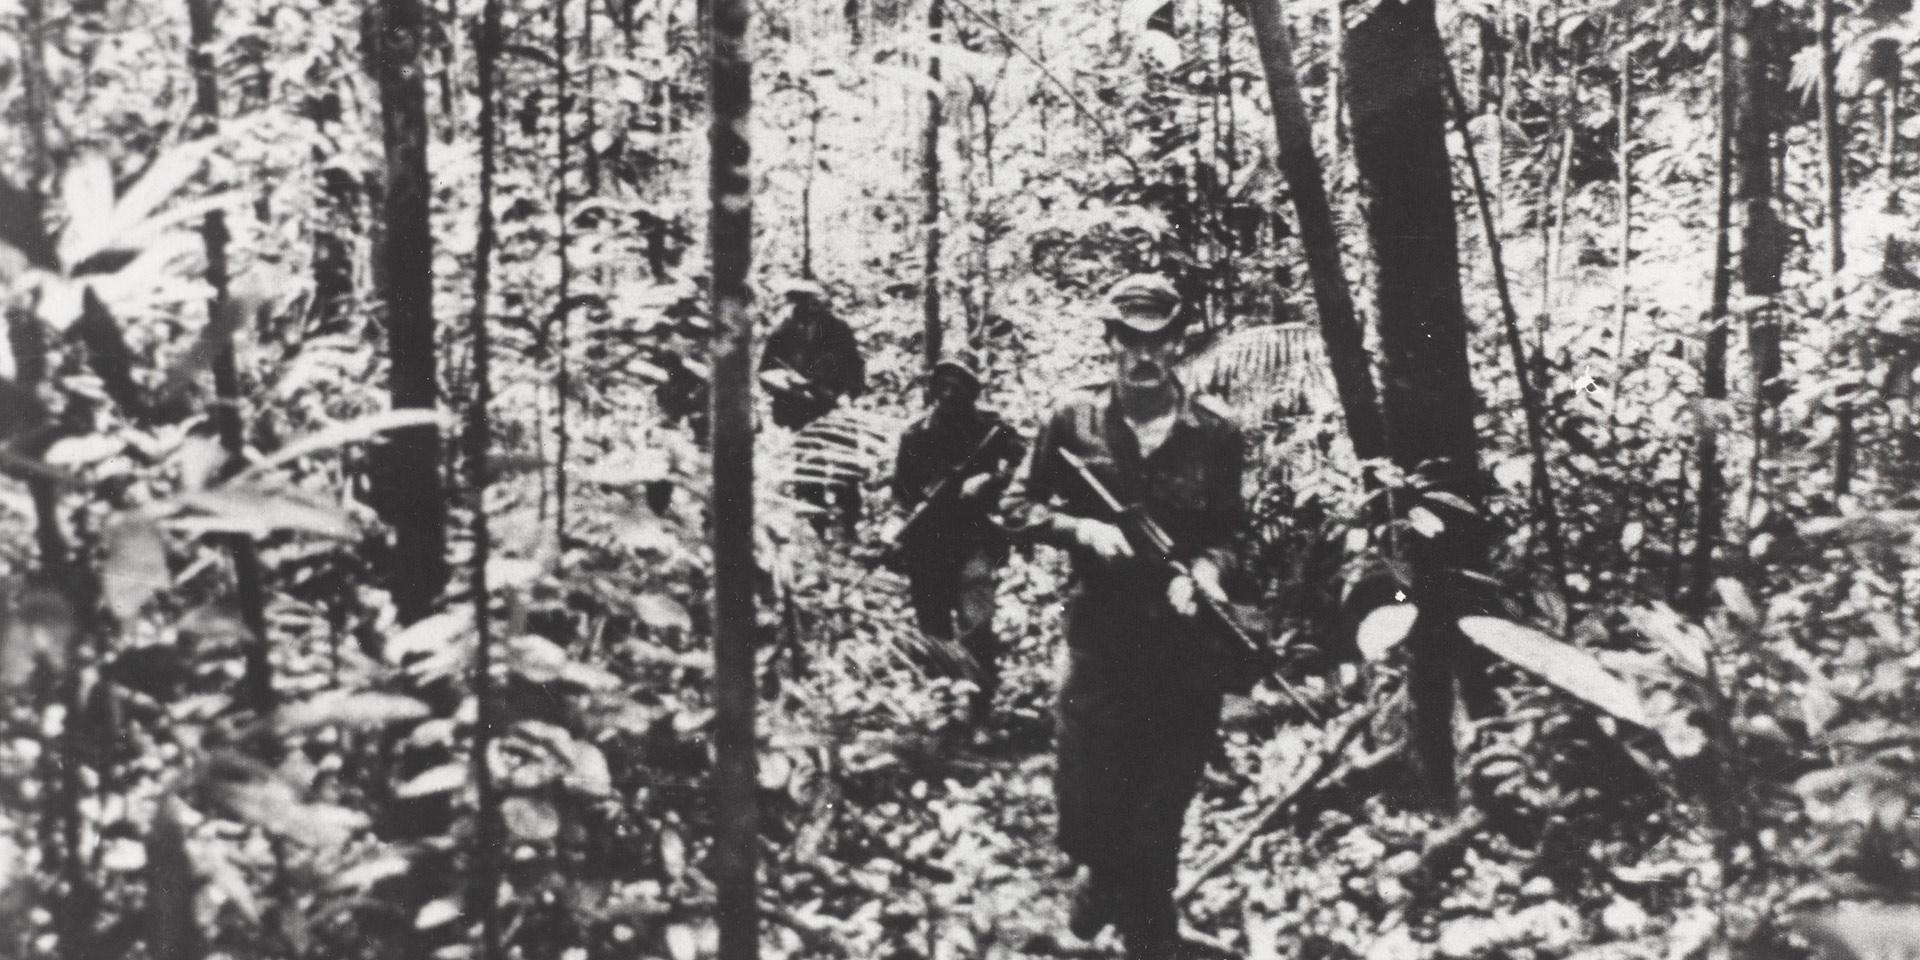 On patrol in the jungles of North Borneo, c1964